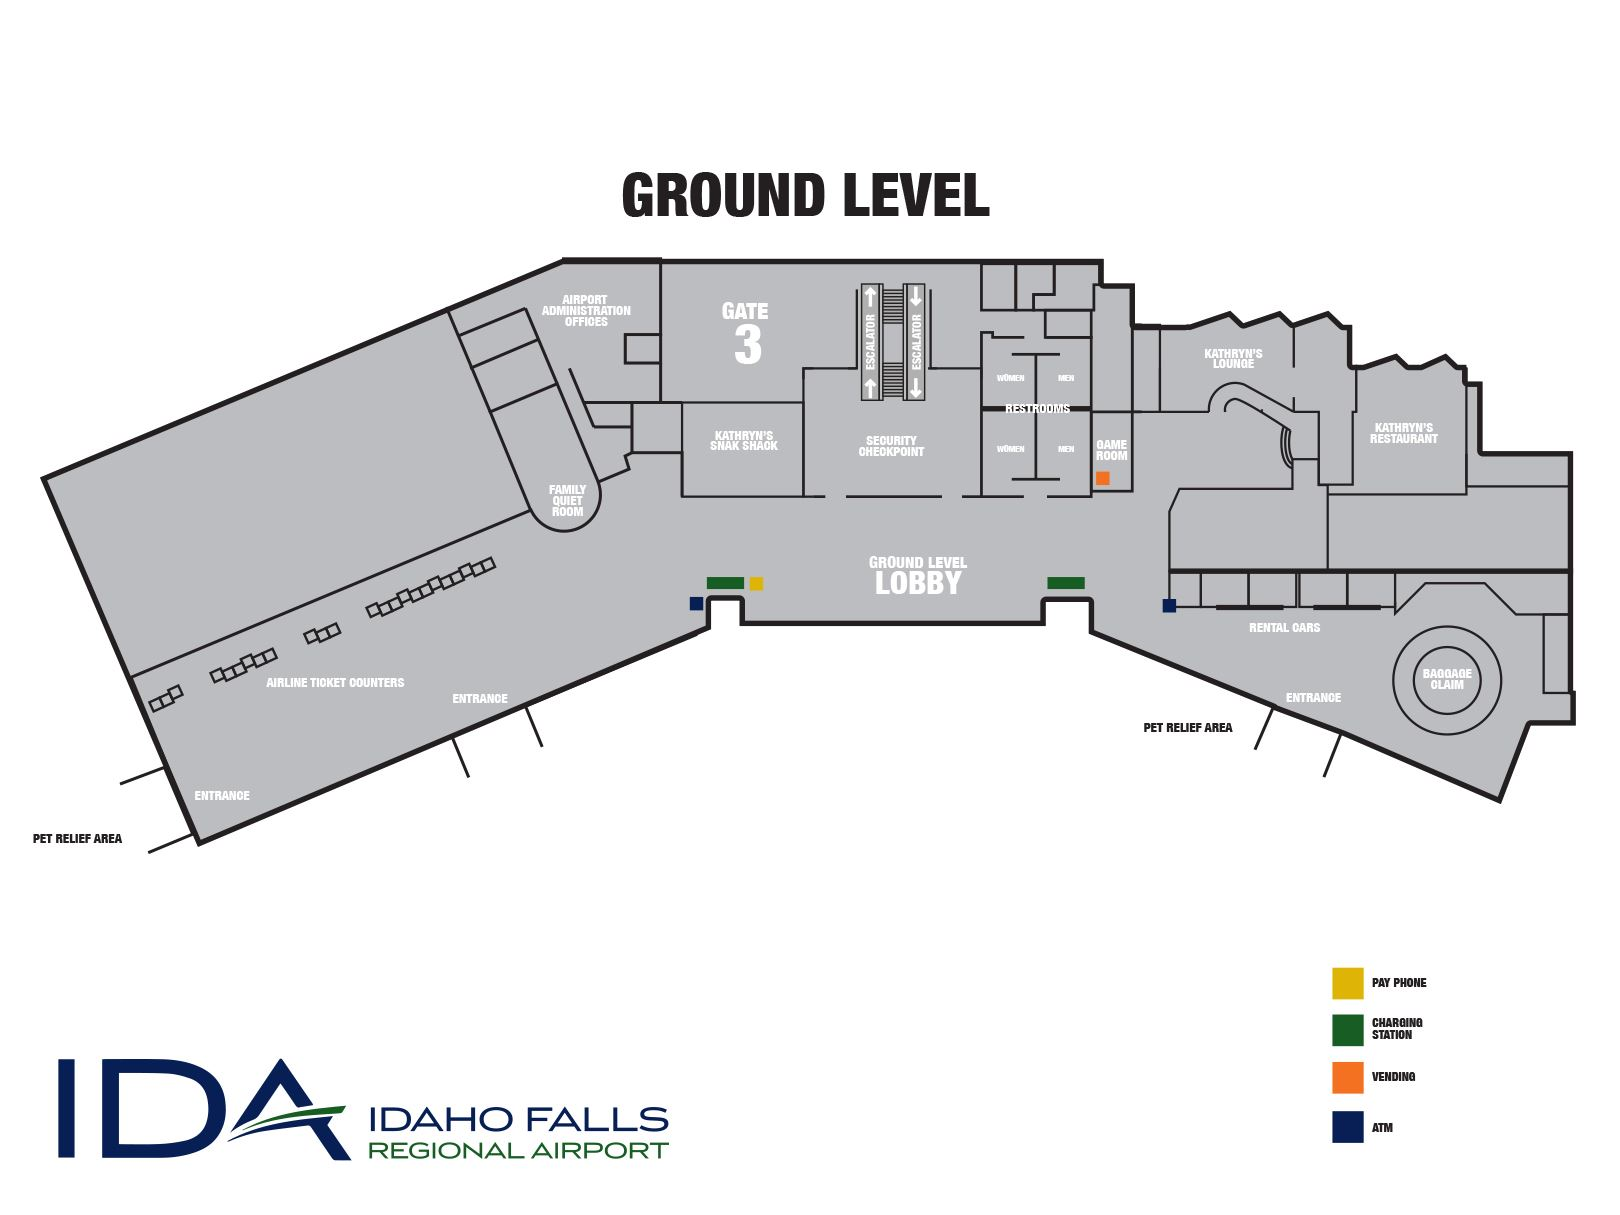 A map of the ground level terminal at Idaho Falls Regional Airport.